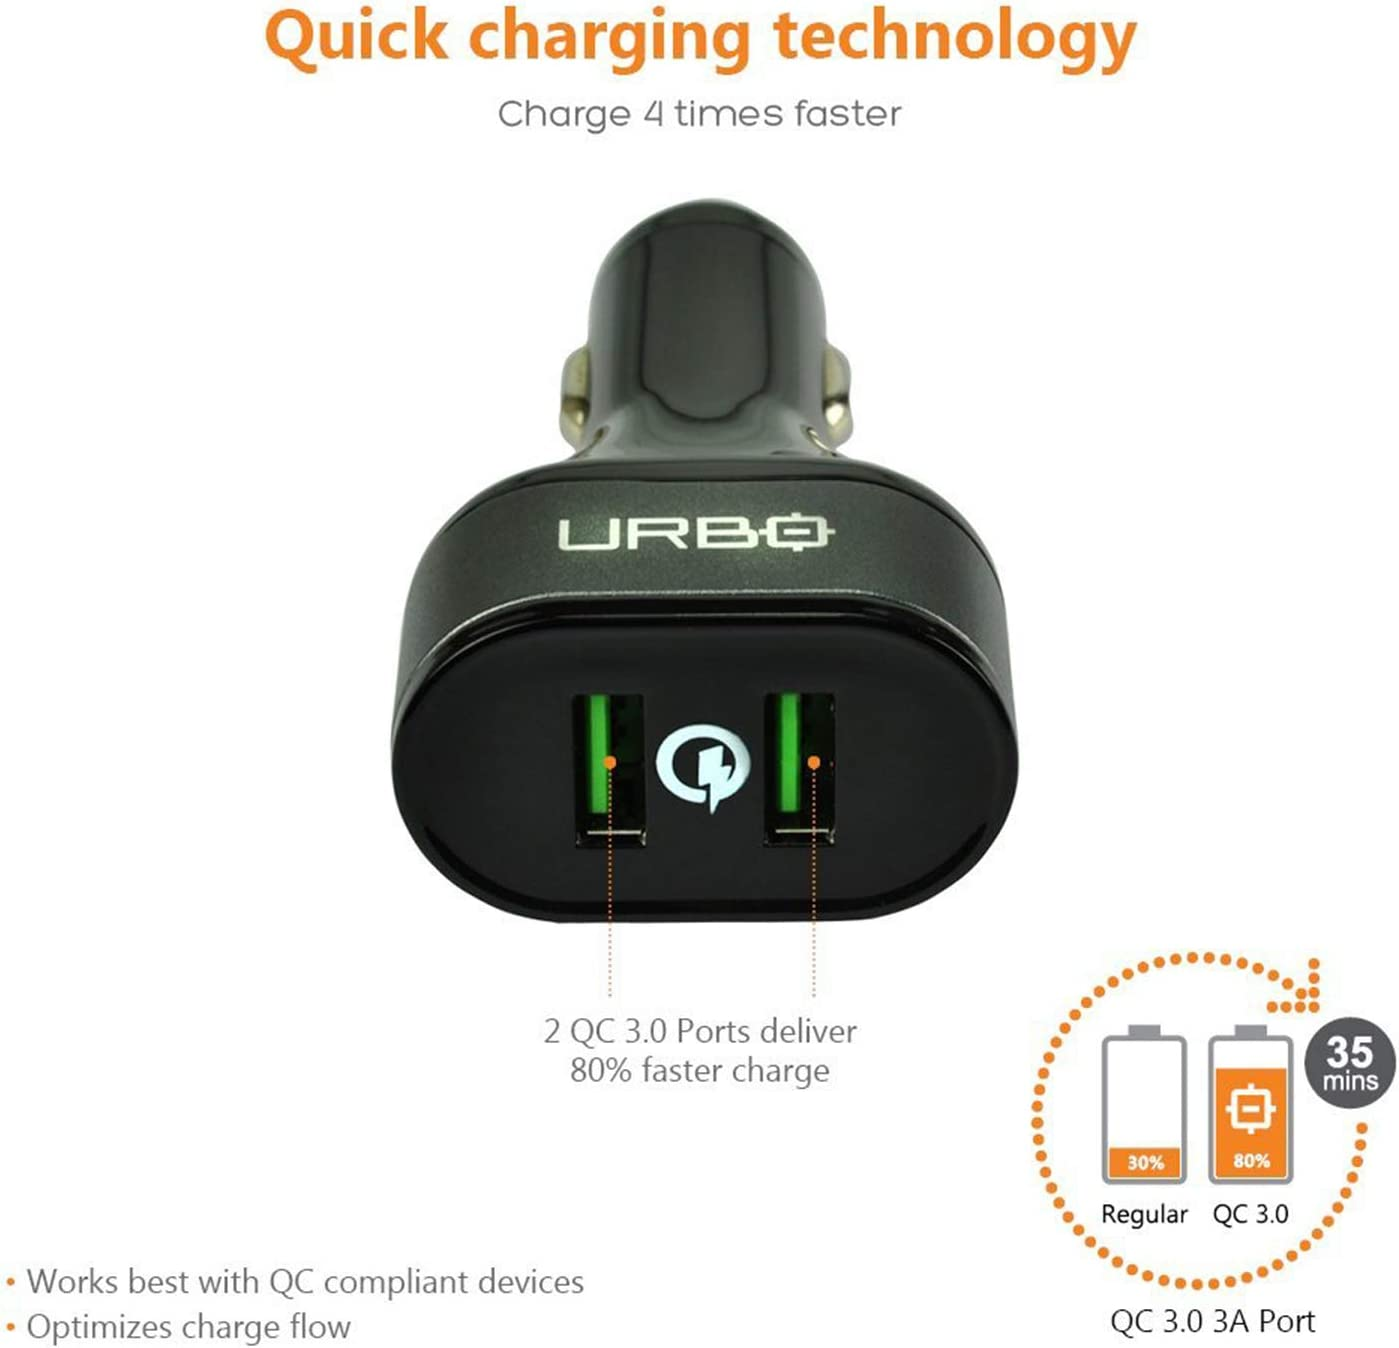 Urbo Car Plug with 2 Quick Charging 3.0 Ports for Charging Compatible Devices Rapidly and Safely